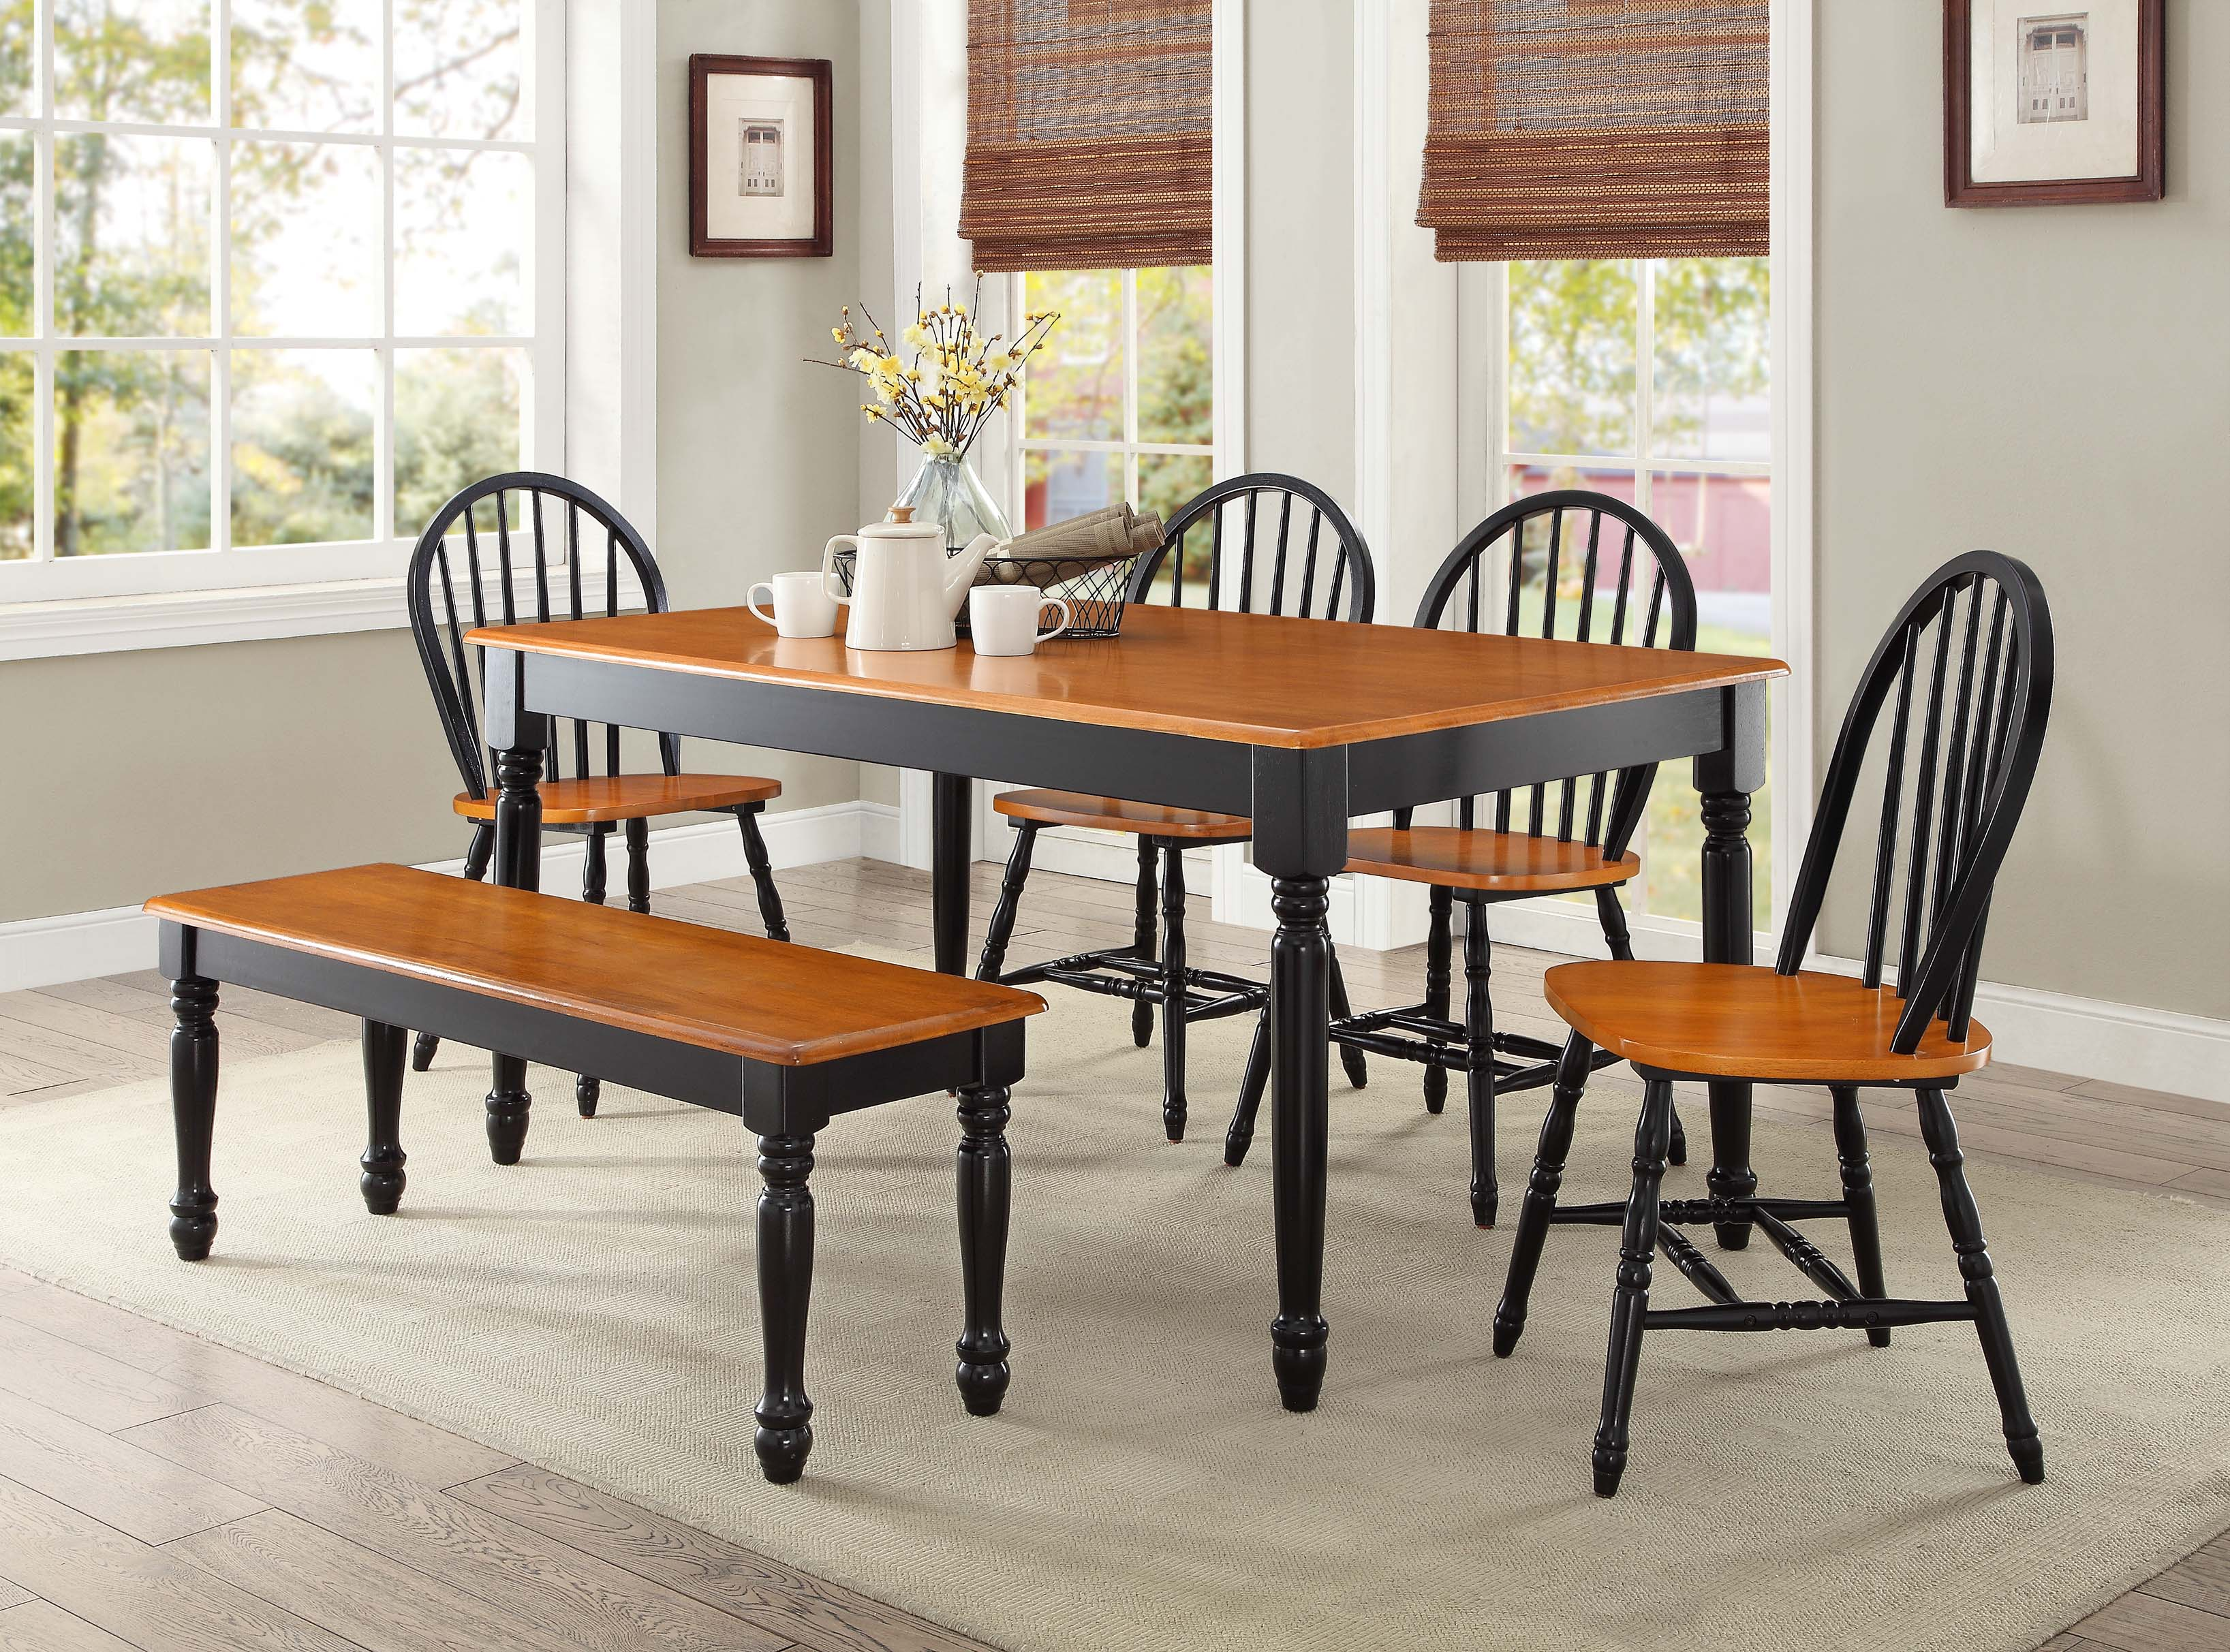 Dining Room Table Set Amazing Kitchen & Dining Furniture  Walmart Design Decoration